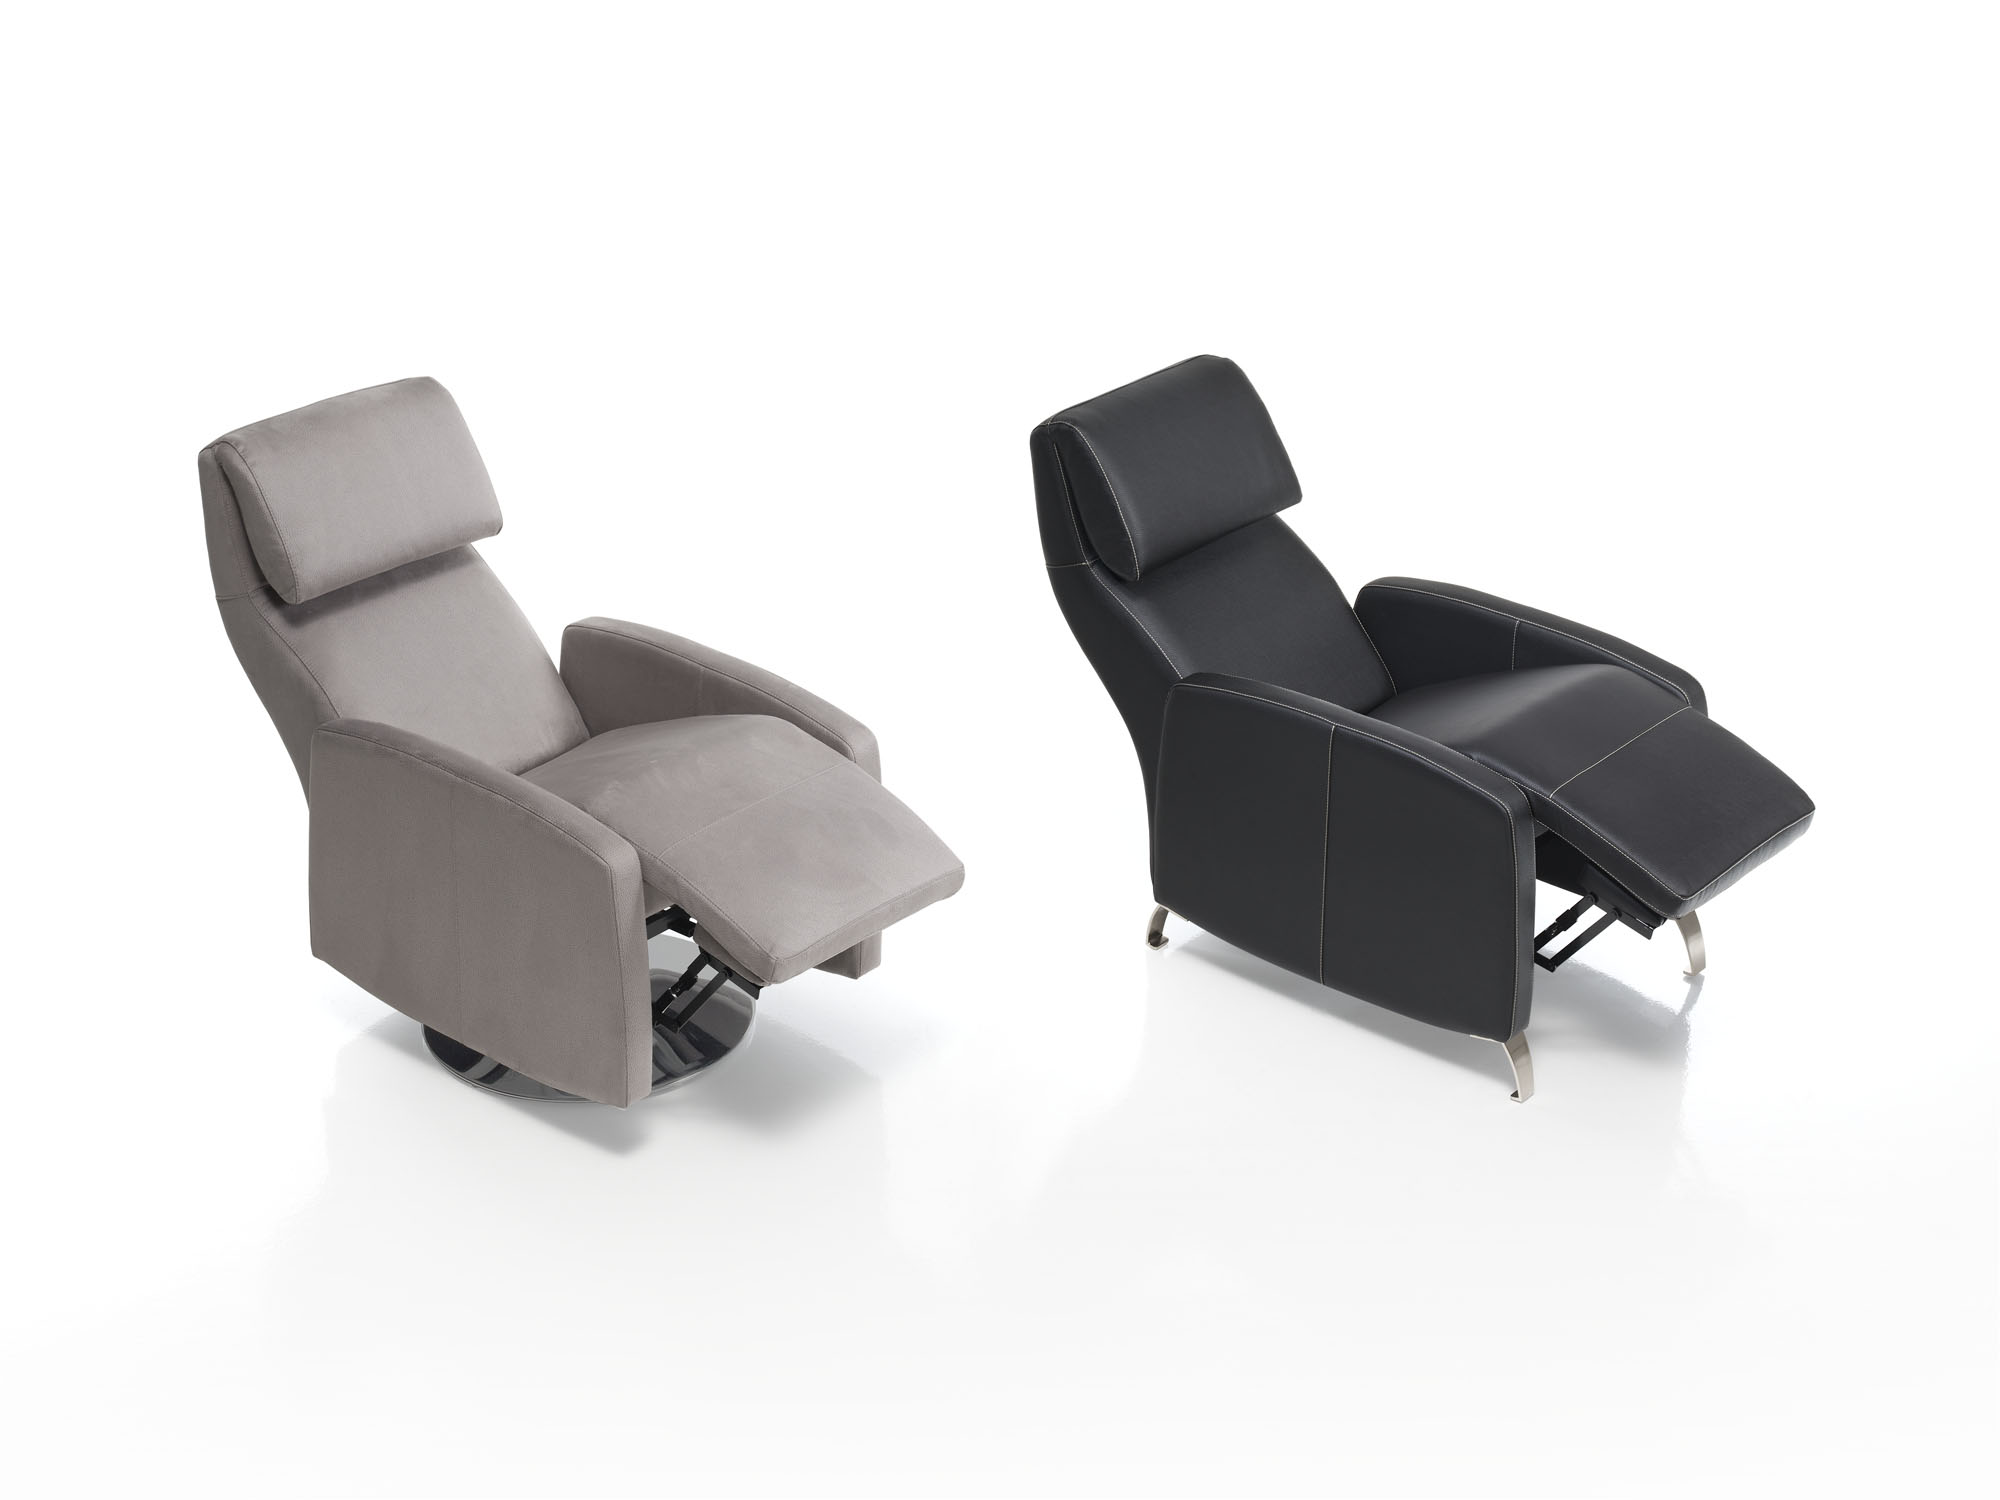 Sillones relax silln relax de diseo modelo lounge with - Sillones reclinables relax ...